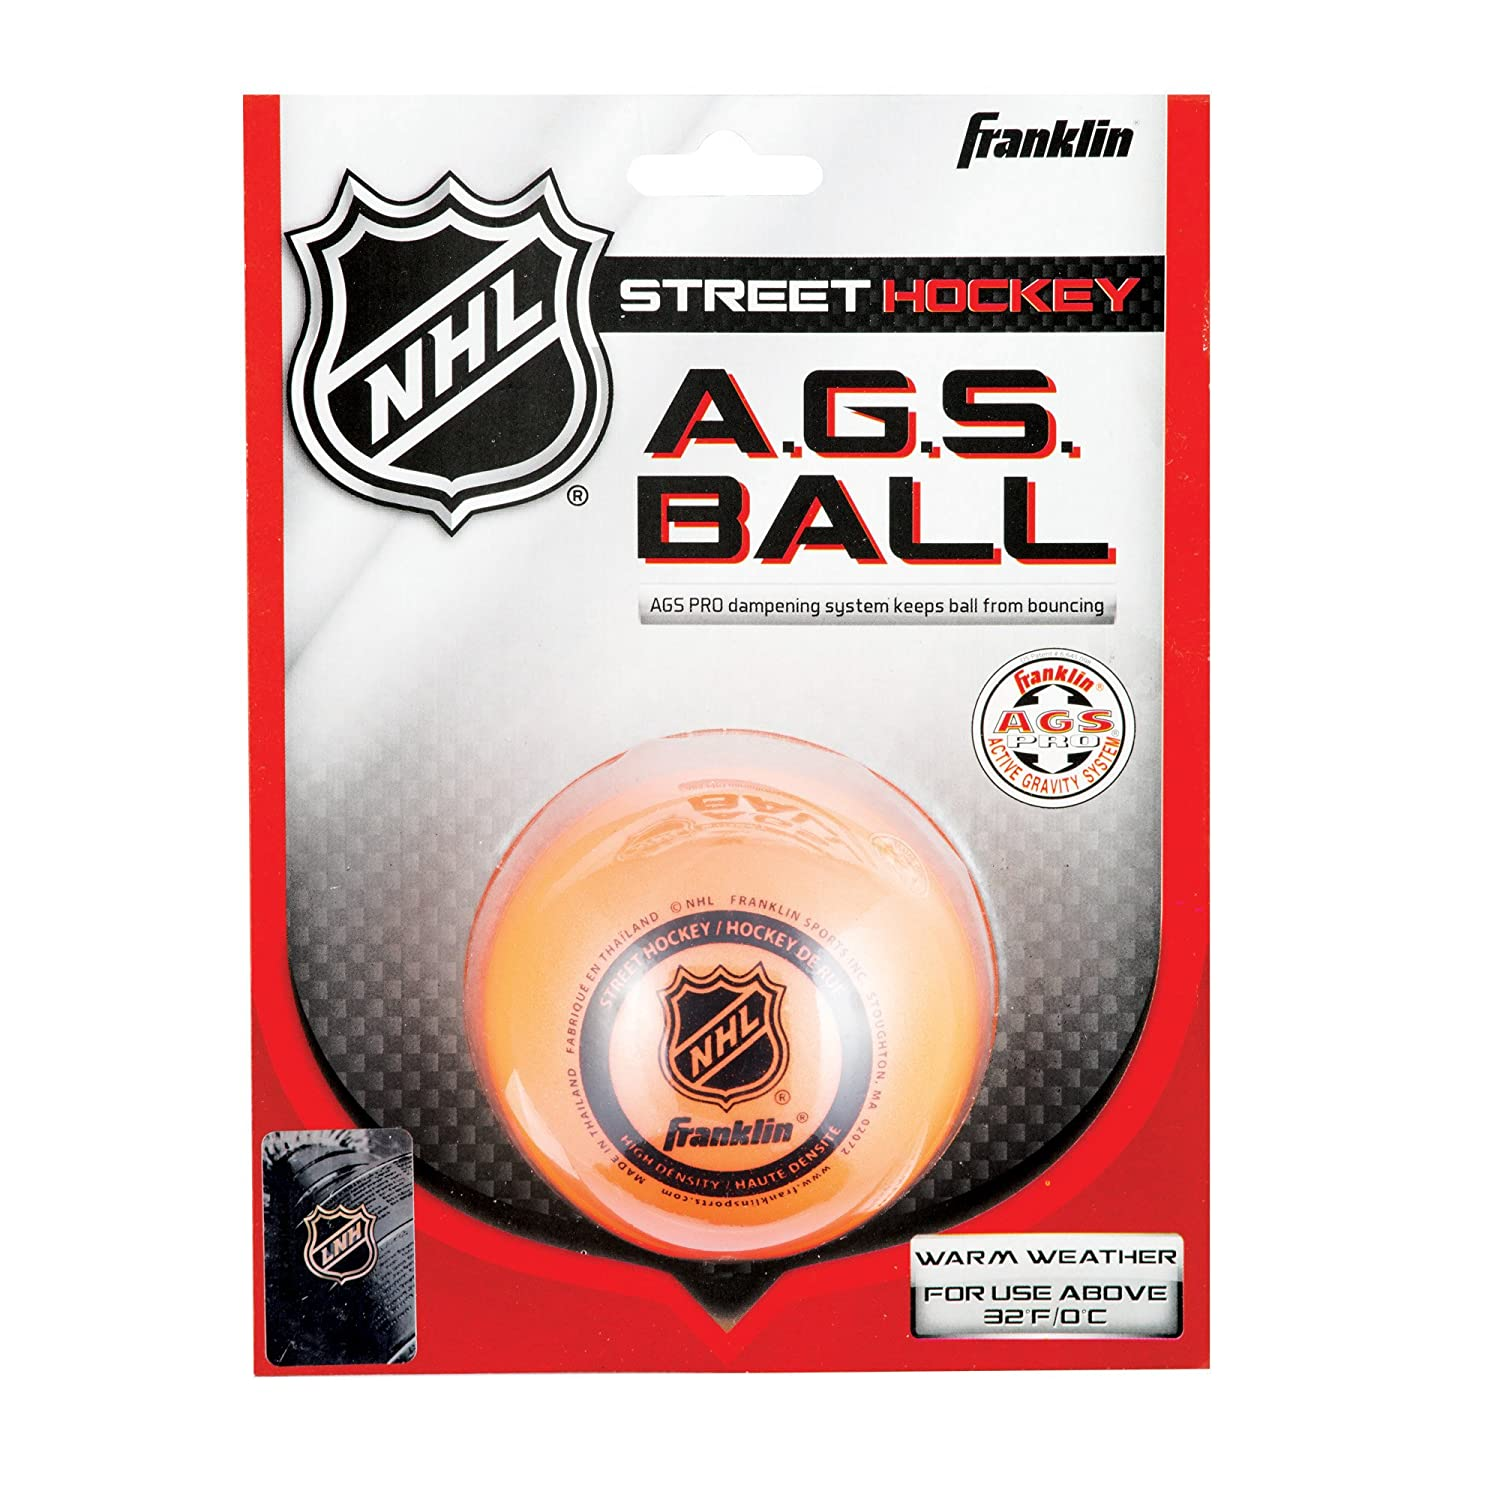 FRANKLIN - AGS Streethockey Ball NHL I Ball für Roller- und Inlinehockey I Outdoor Ball mit Active-Gravity-System I speziell gedämpfte Flüssigkeit im Ballinneren I mittelhart I hitzetauglich - Orange 12217